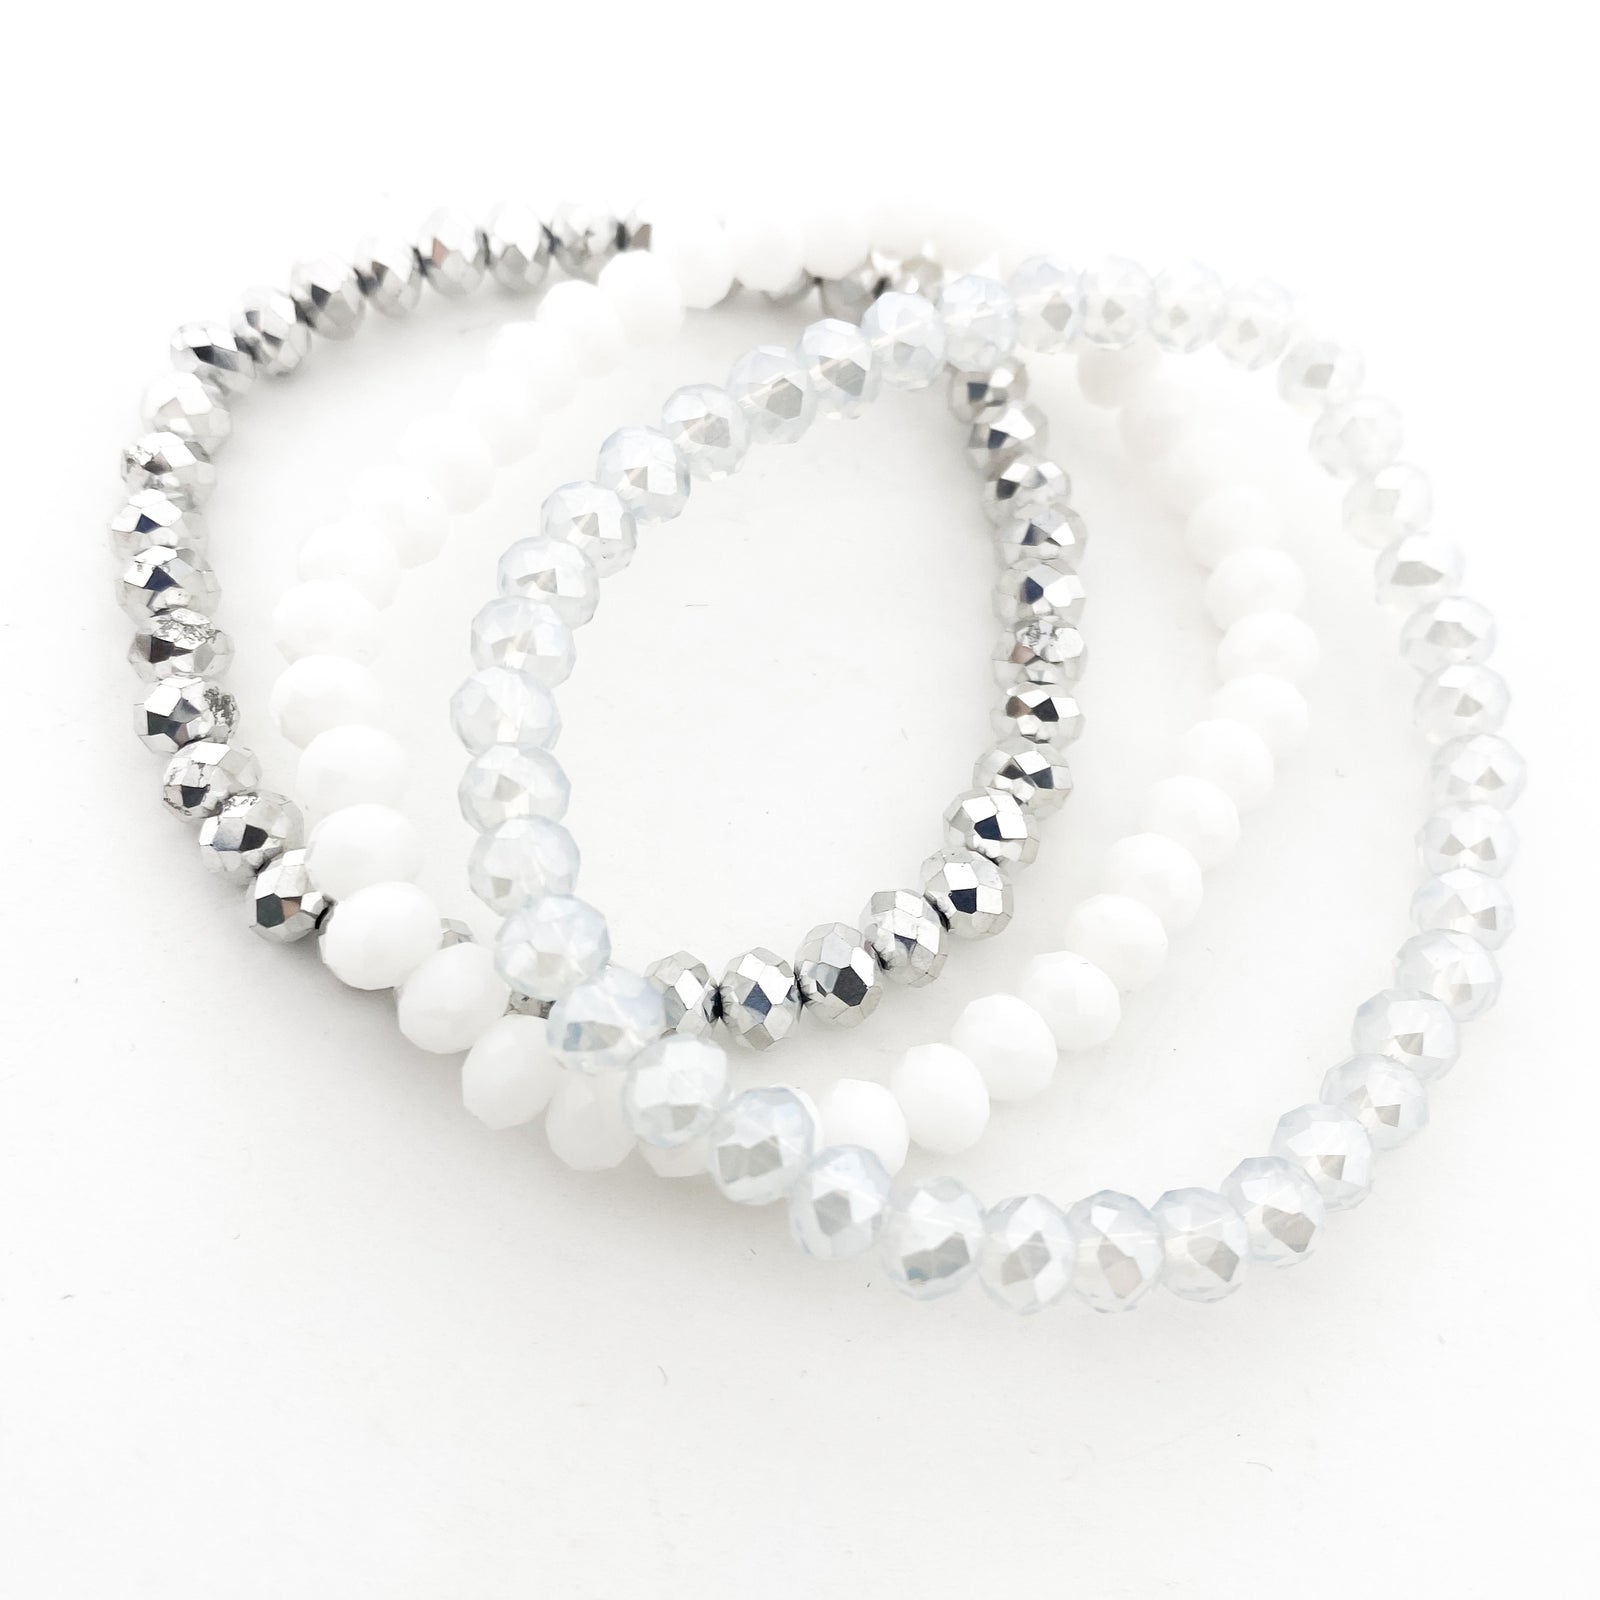 CRYSTAL BRACELETS | 6MM | ICE COLLECTION